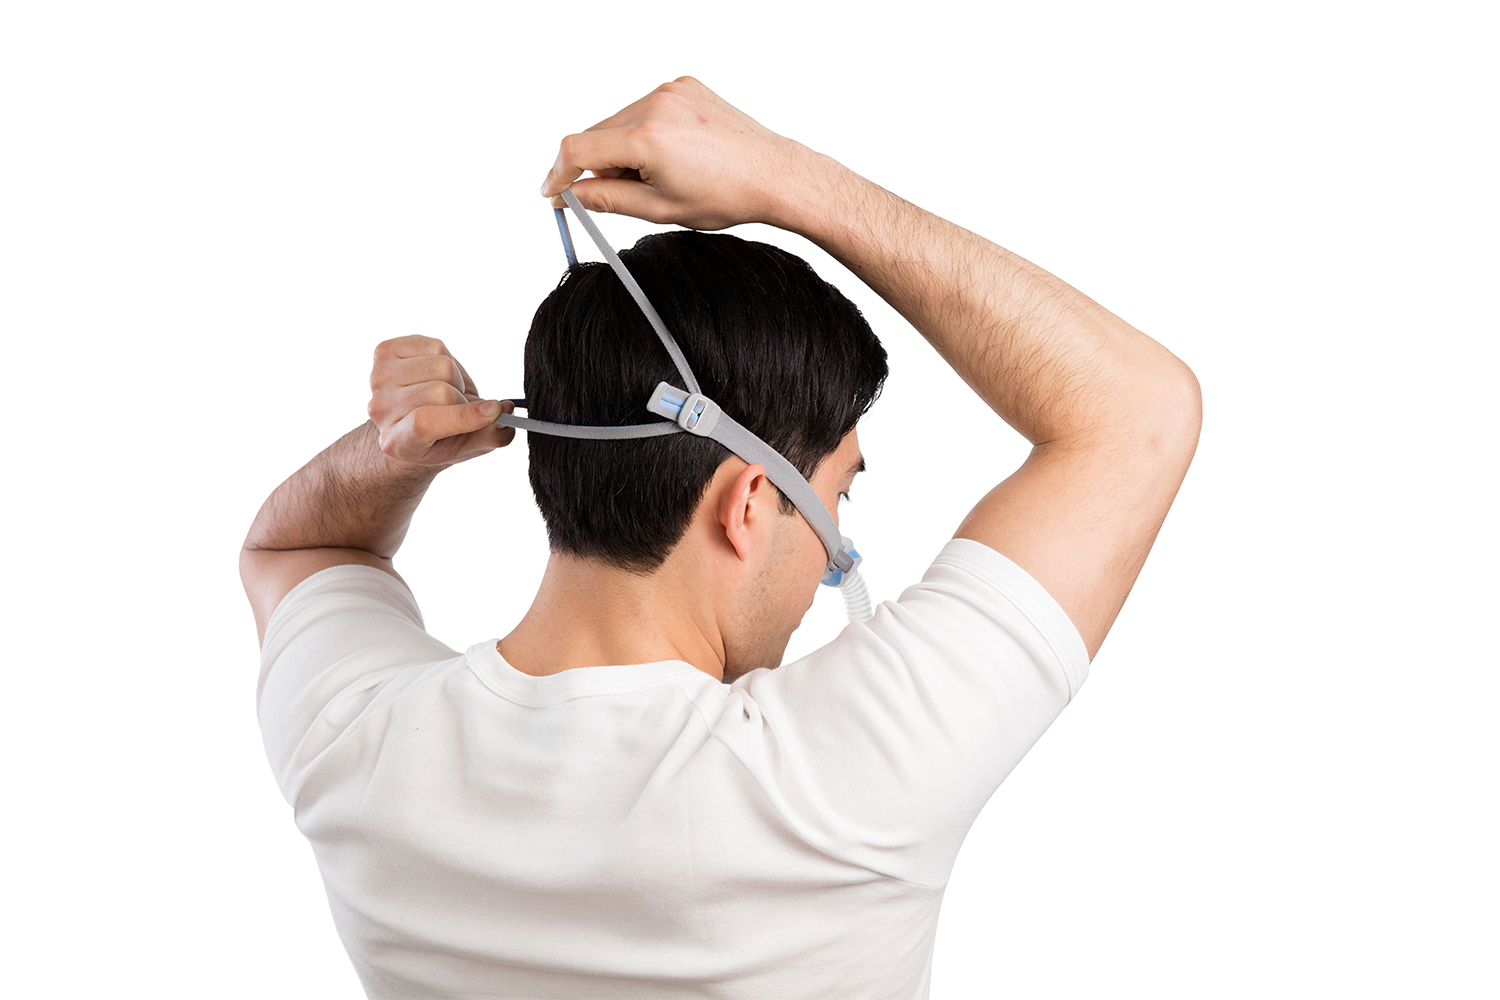 Man Trying on AirFit N30 for AirMini Mask